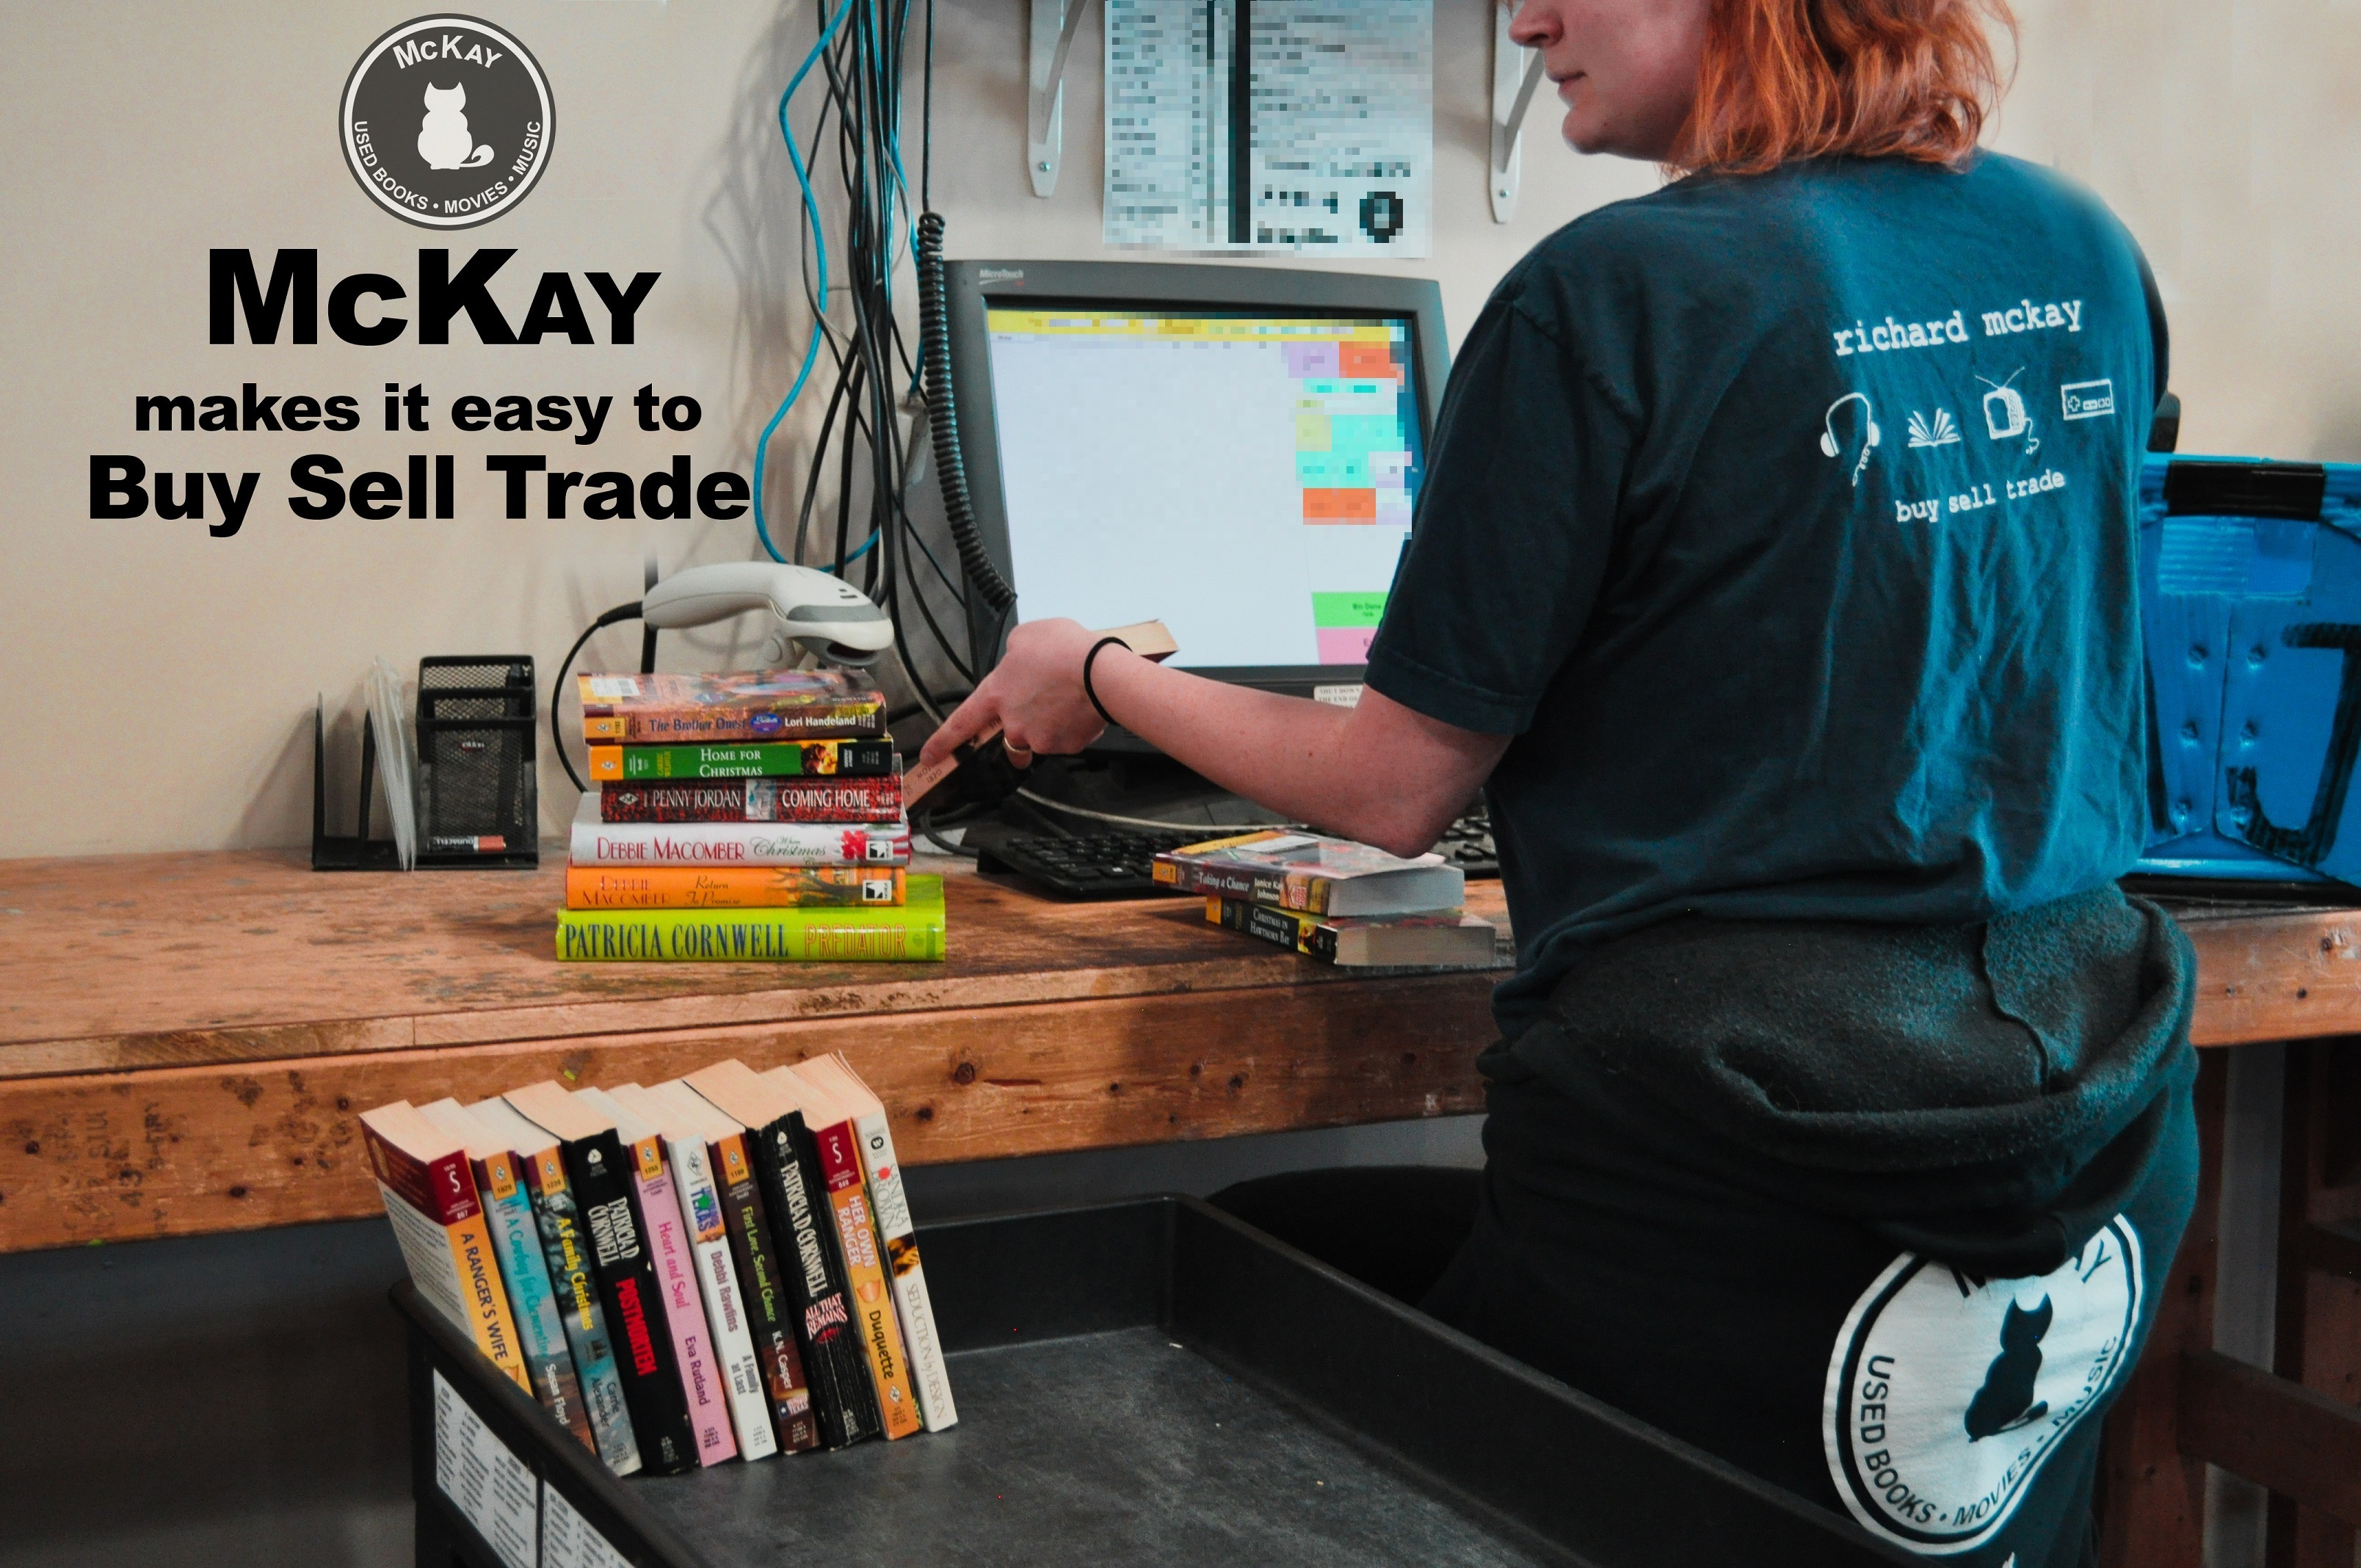 About McKay Used Books